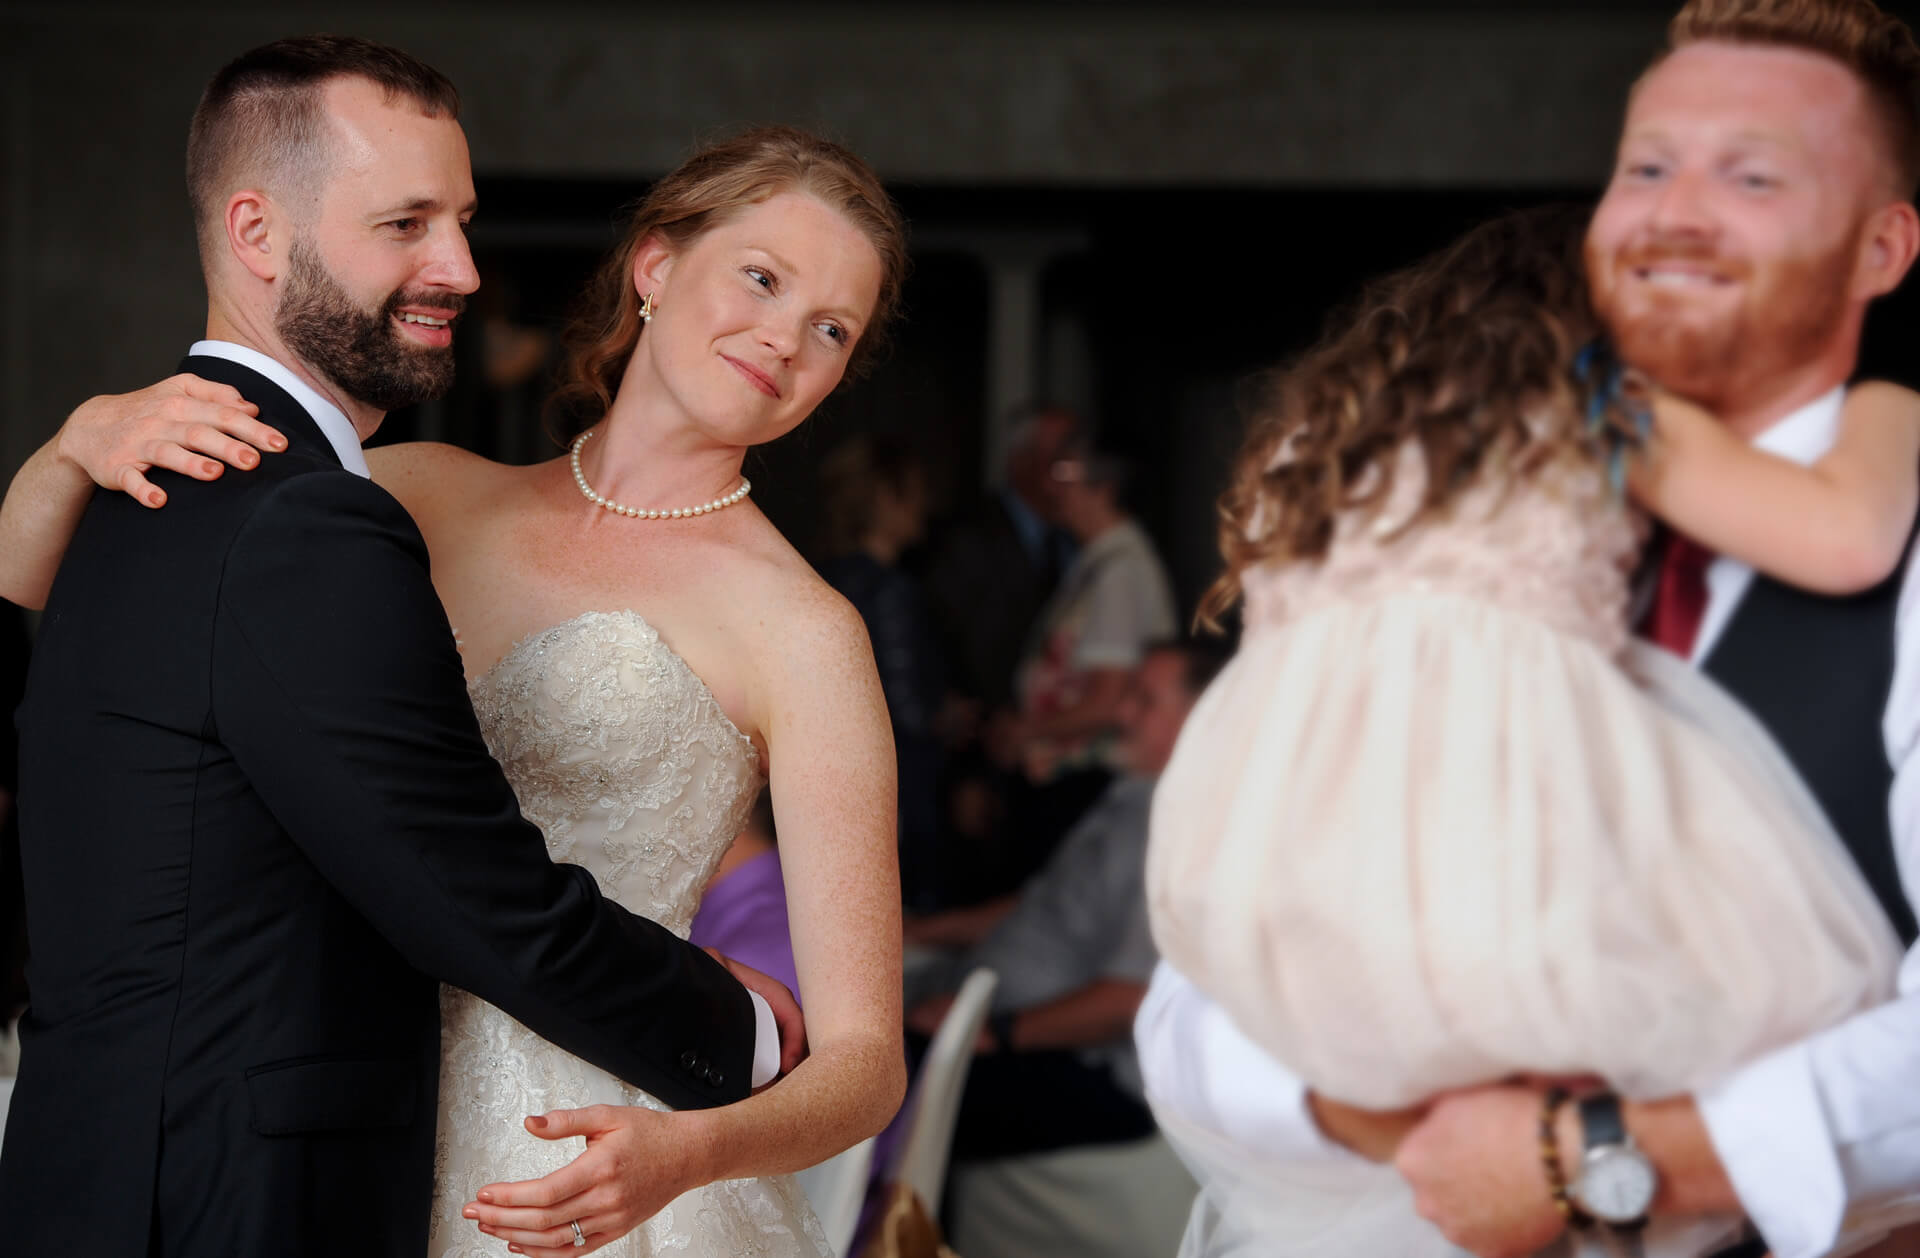 Documentary wedding photo of the bride and groom looking lovingly at the flower girl dancing with her father in Metro Detroit, Michigan.